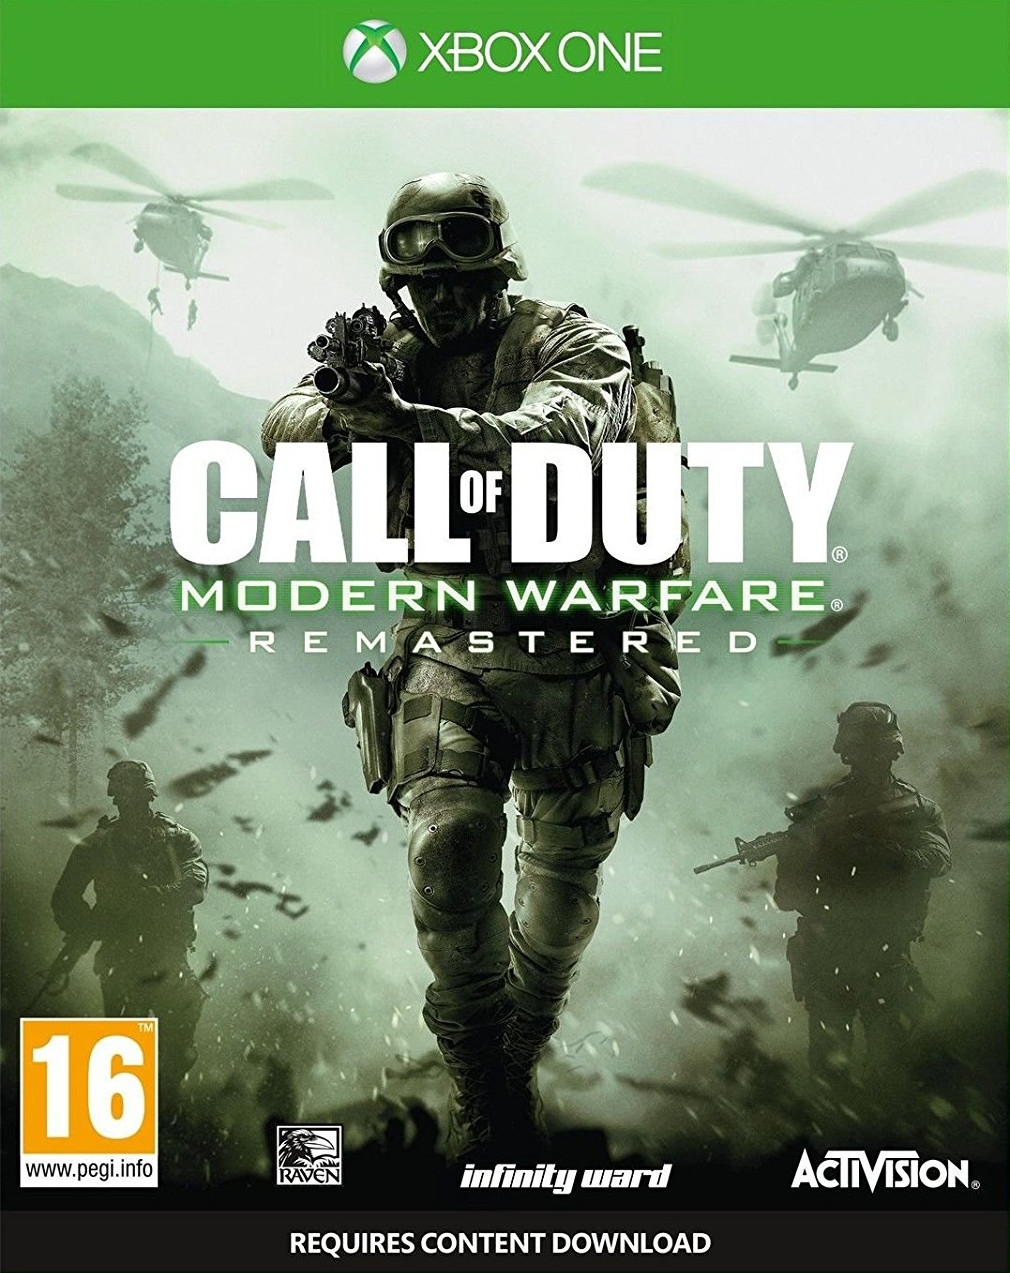 Call of Duty: Modern Warfare HD Remastered